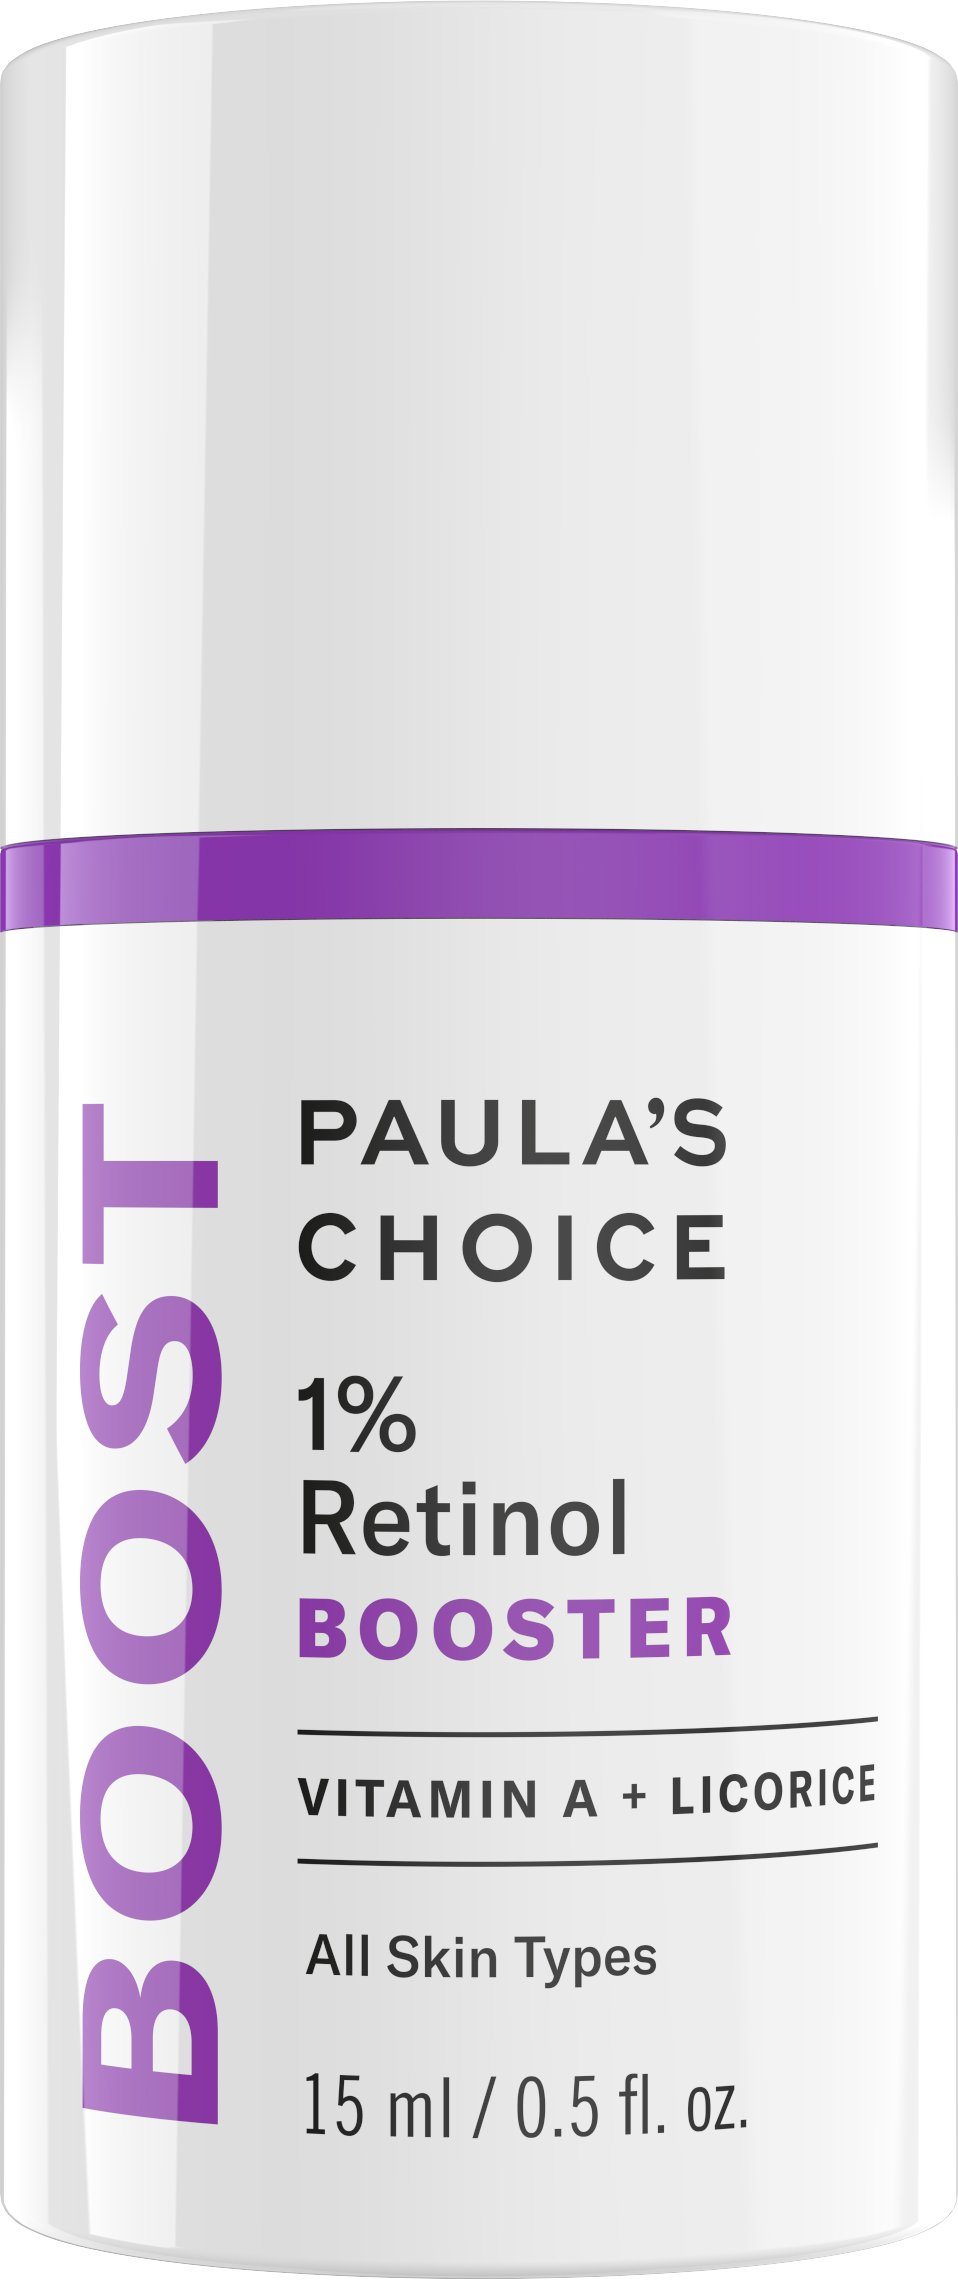 Paula's Choice BOOST 1% Retinol Booster for Brown Spots and Wrinkles, 0.5 Ounce Bottle Concentrated Vitamin A Retinol Serum for Normal, Dry, Oily and Combination Skin of the Face and Neck